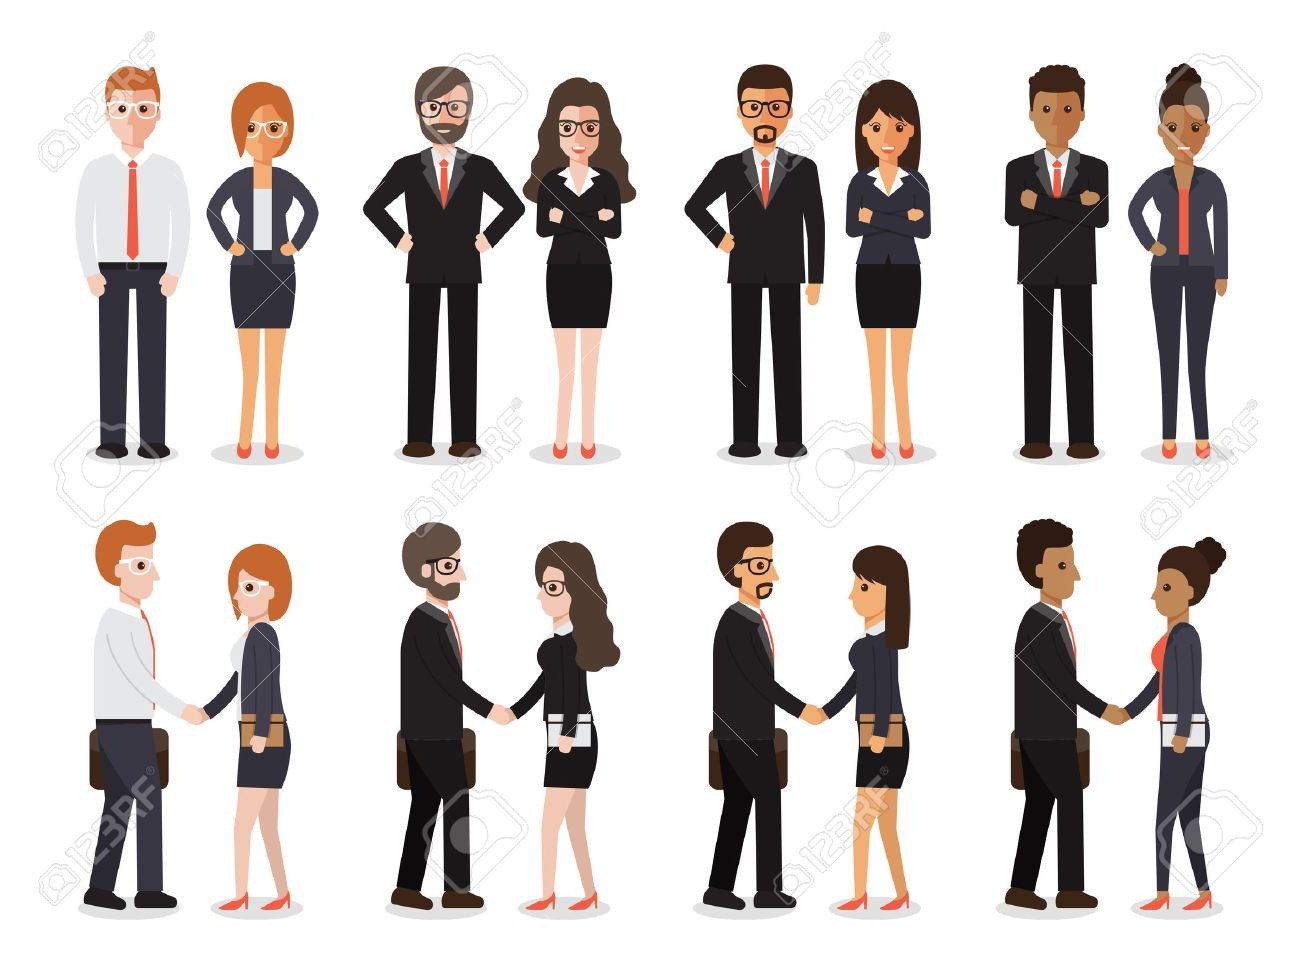 Group of people at work with handshaking on white background. Flat design characters. - 54712001